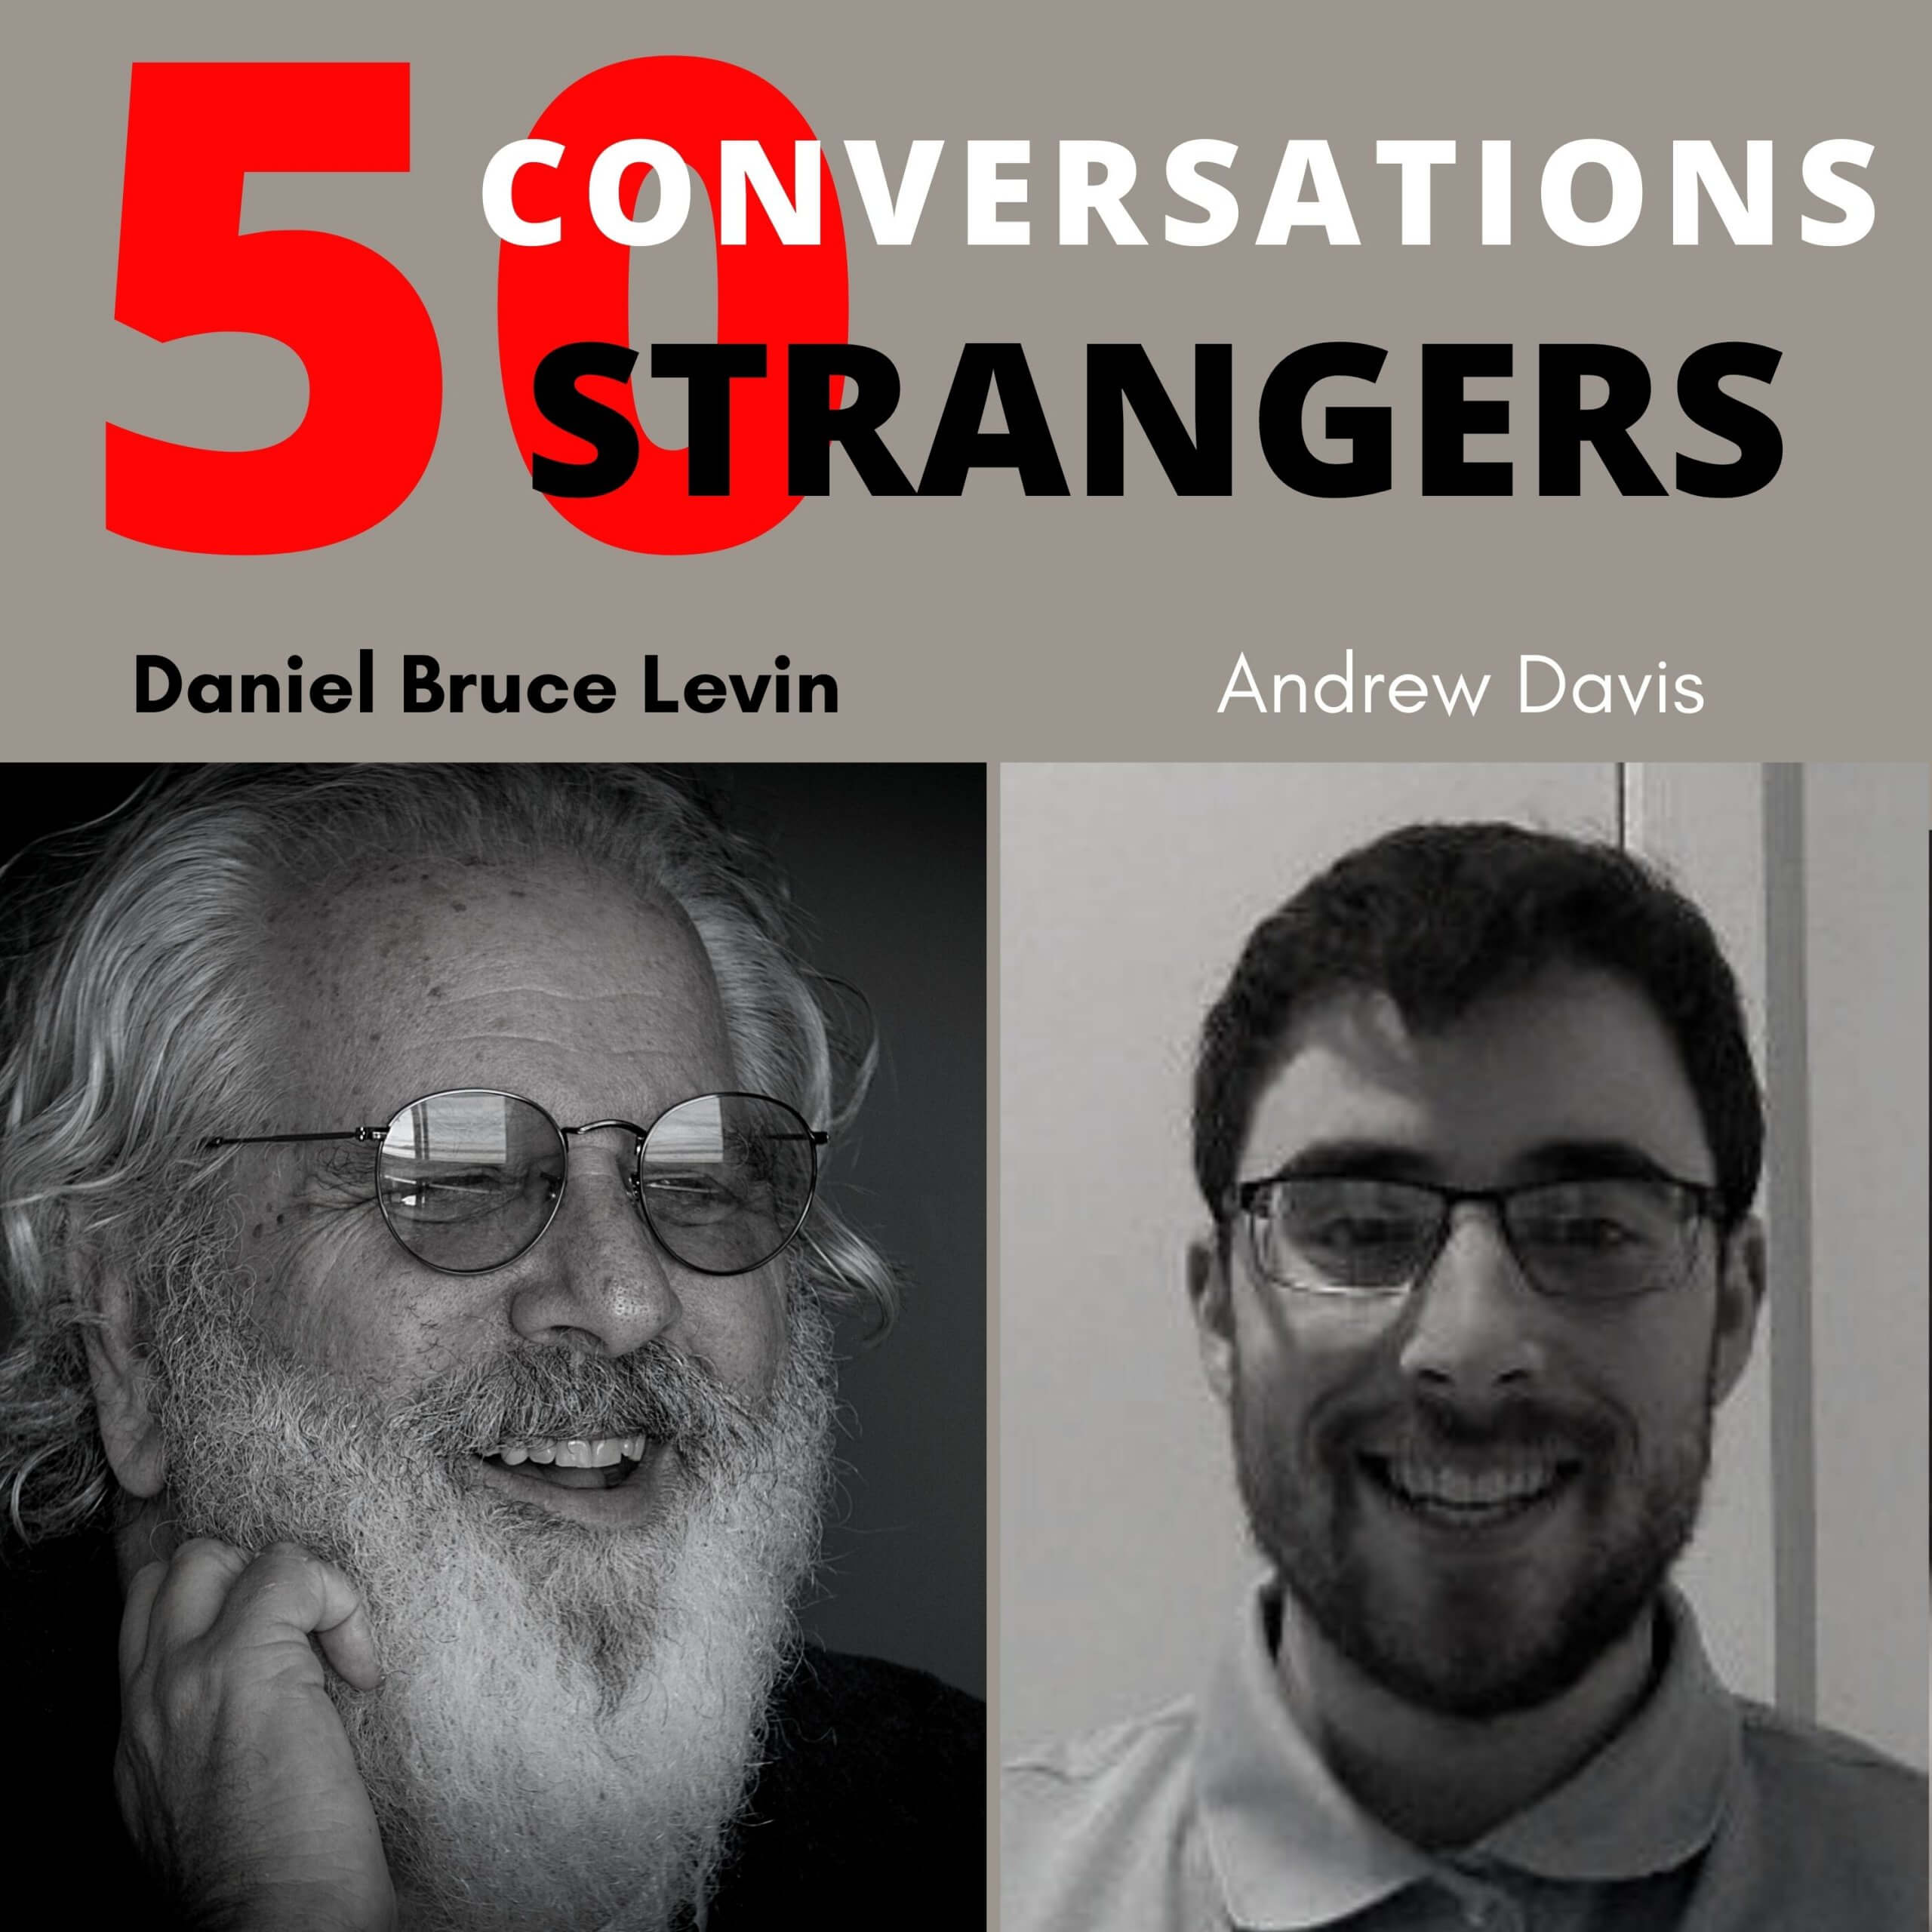 50 Conversations with 50 Strangers with Andrew Davis